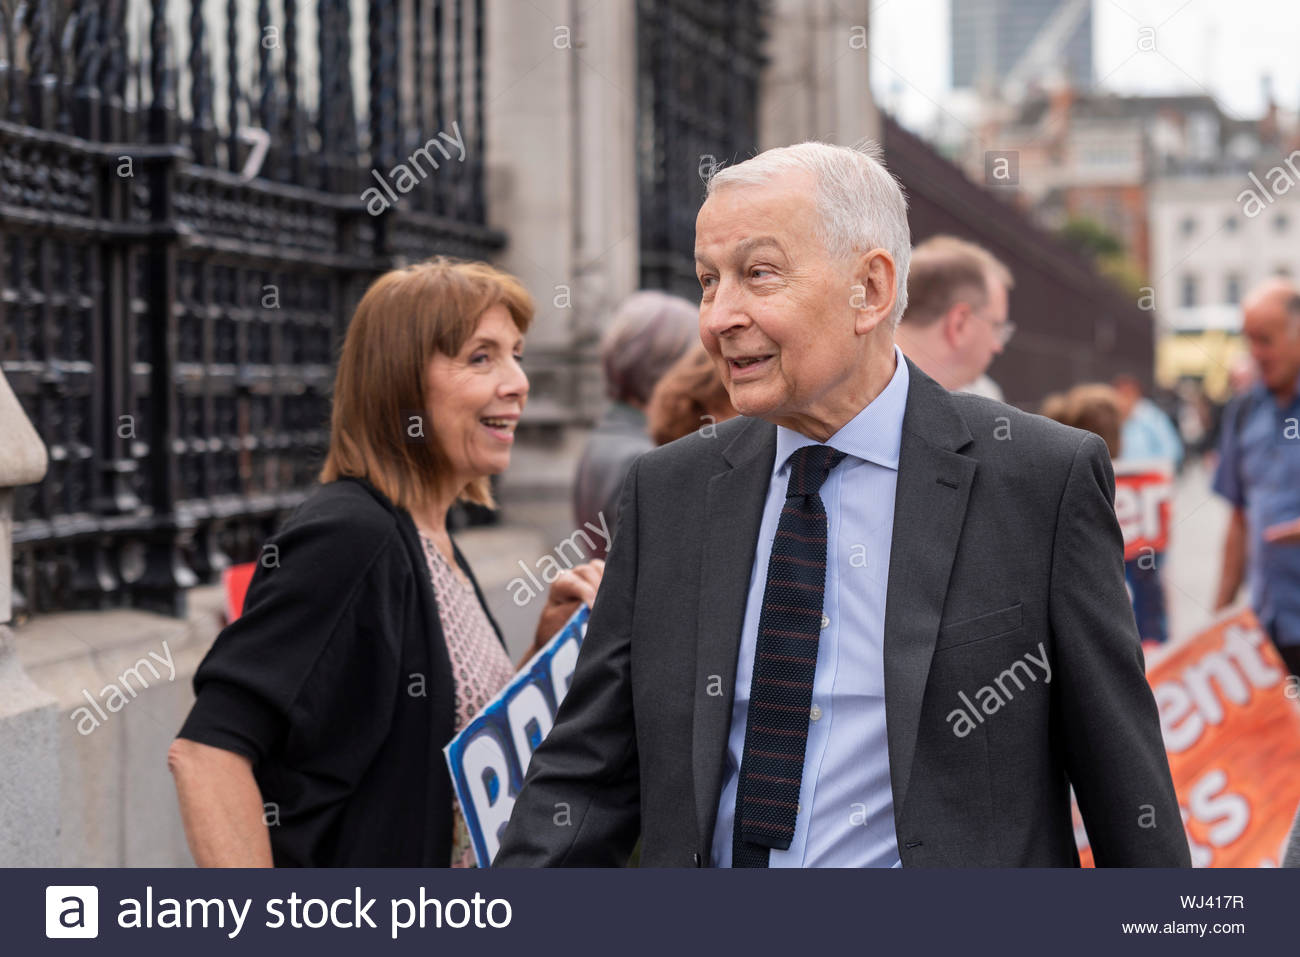 Westminster, London, UK. 3rd September 2019. MPs have begun arriving at the Palace of Westminster to resume duties after the summer recess, at least until the prorogue of Parliament next week. Protesters have gathered against and in favour of both Brexit and Boris Johnson's decision to suspend Parliament. Credit: Avpics/Alamy Live News Credit: Avpics/Alamy Live News - Stock Photo